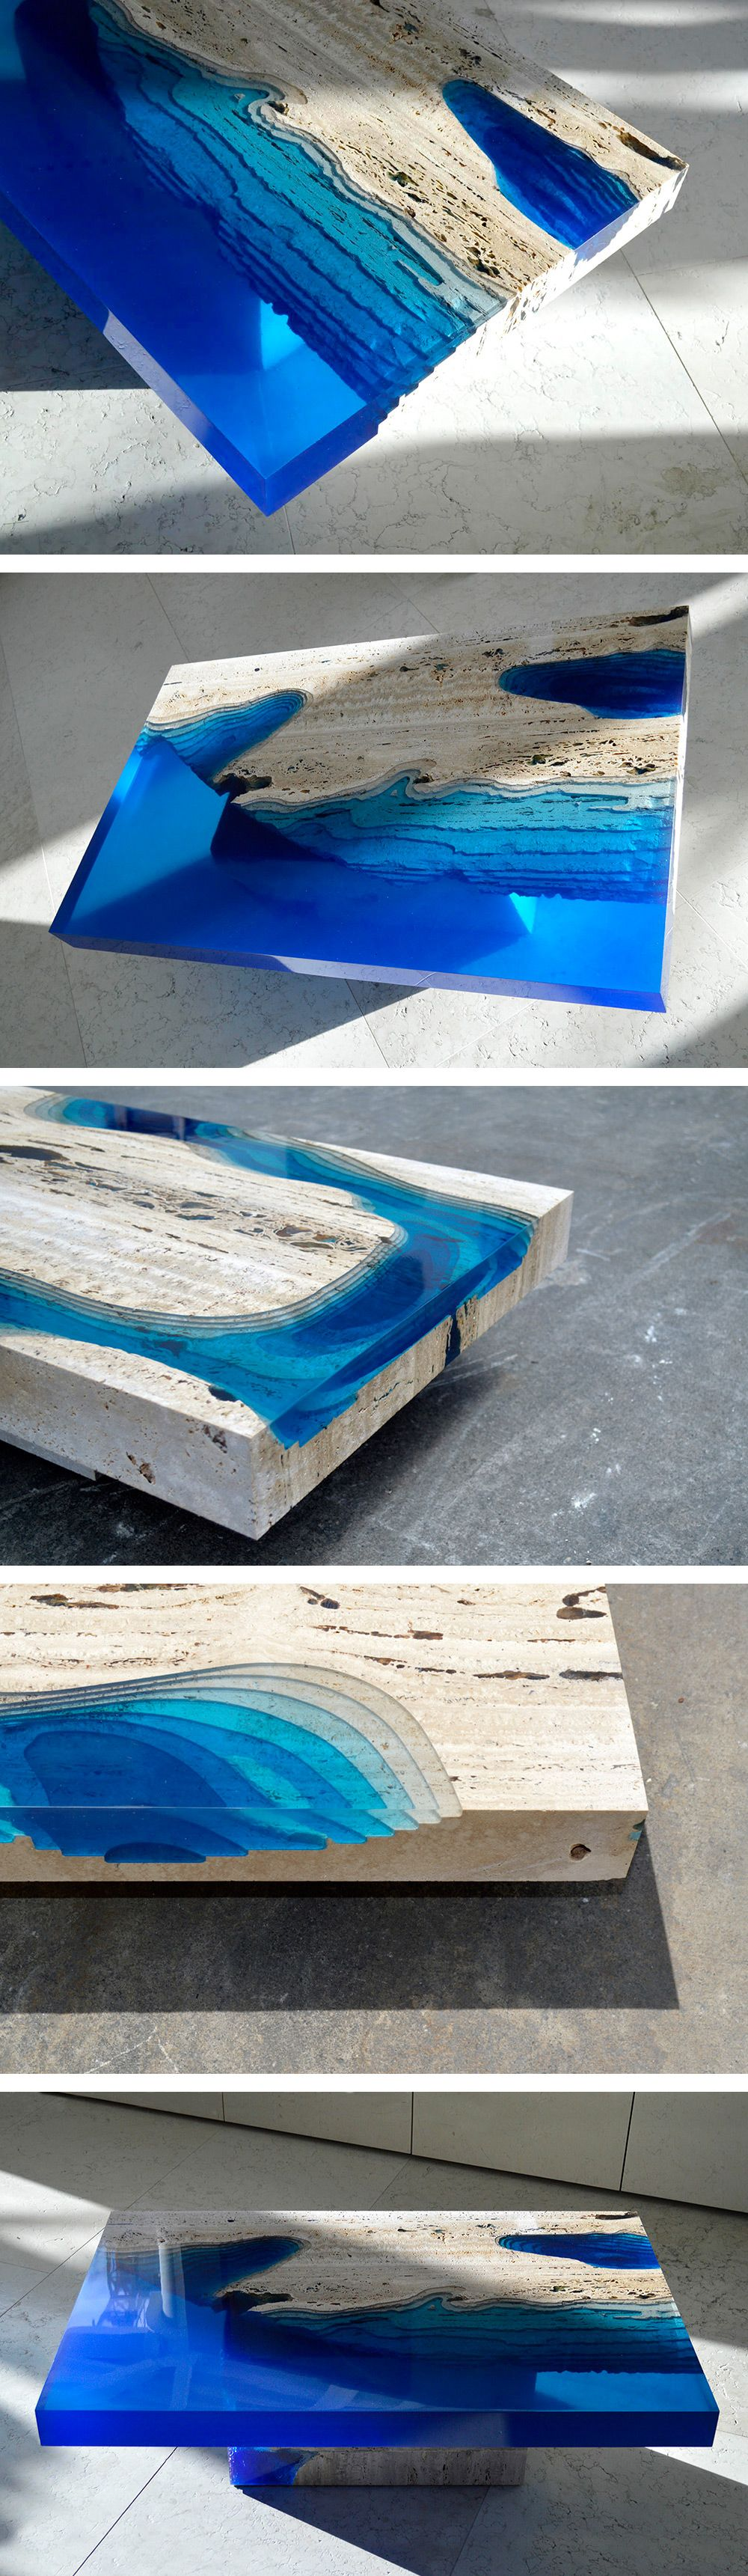 Cut Travertine Marble And Resin Merge To Create U0027Lagoonu0027 Tables